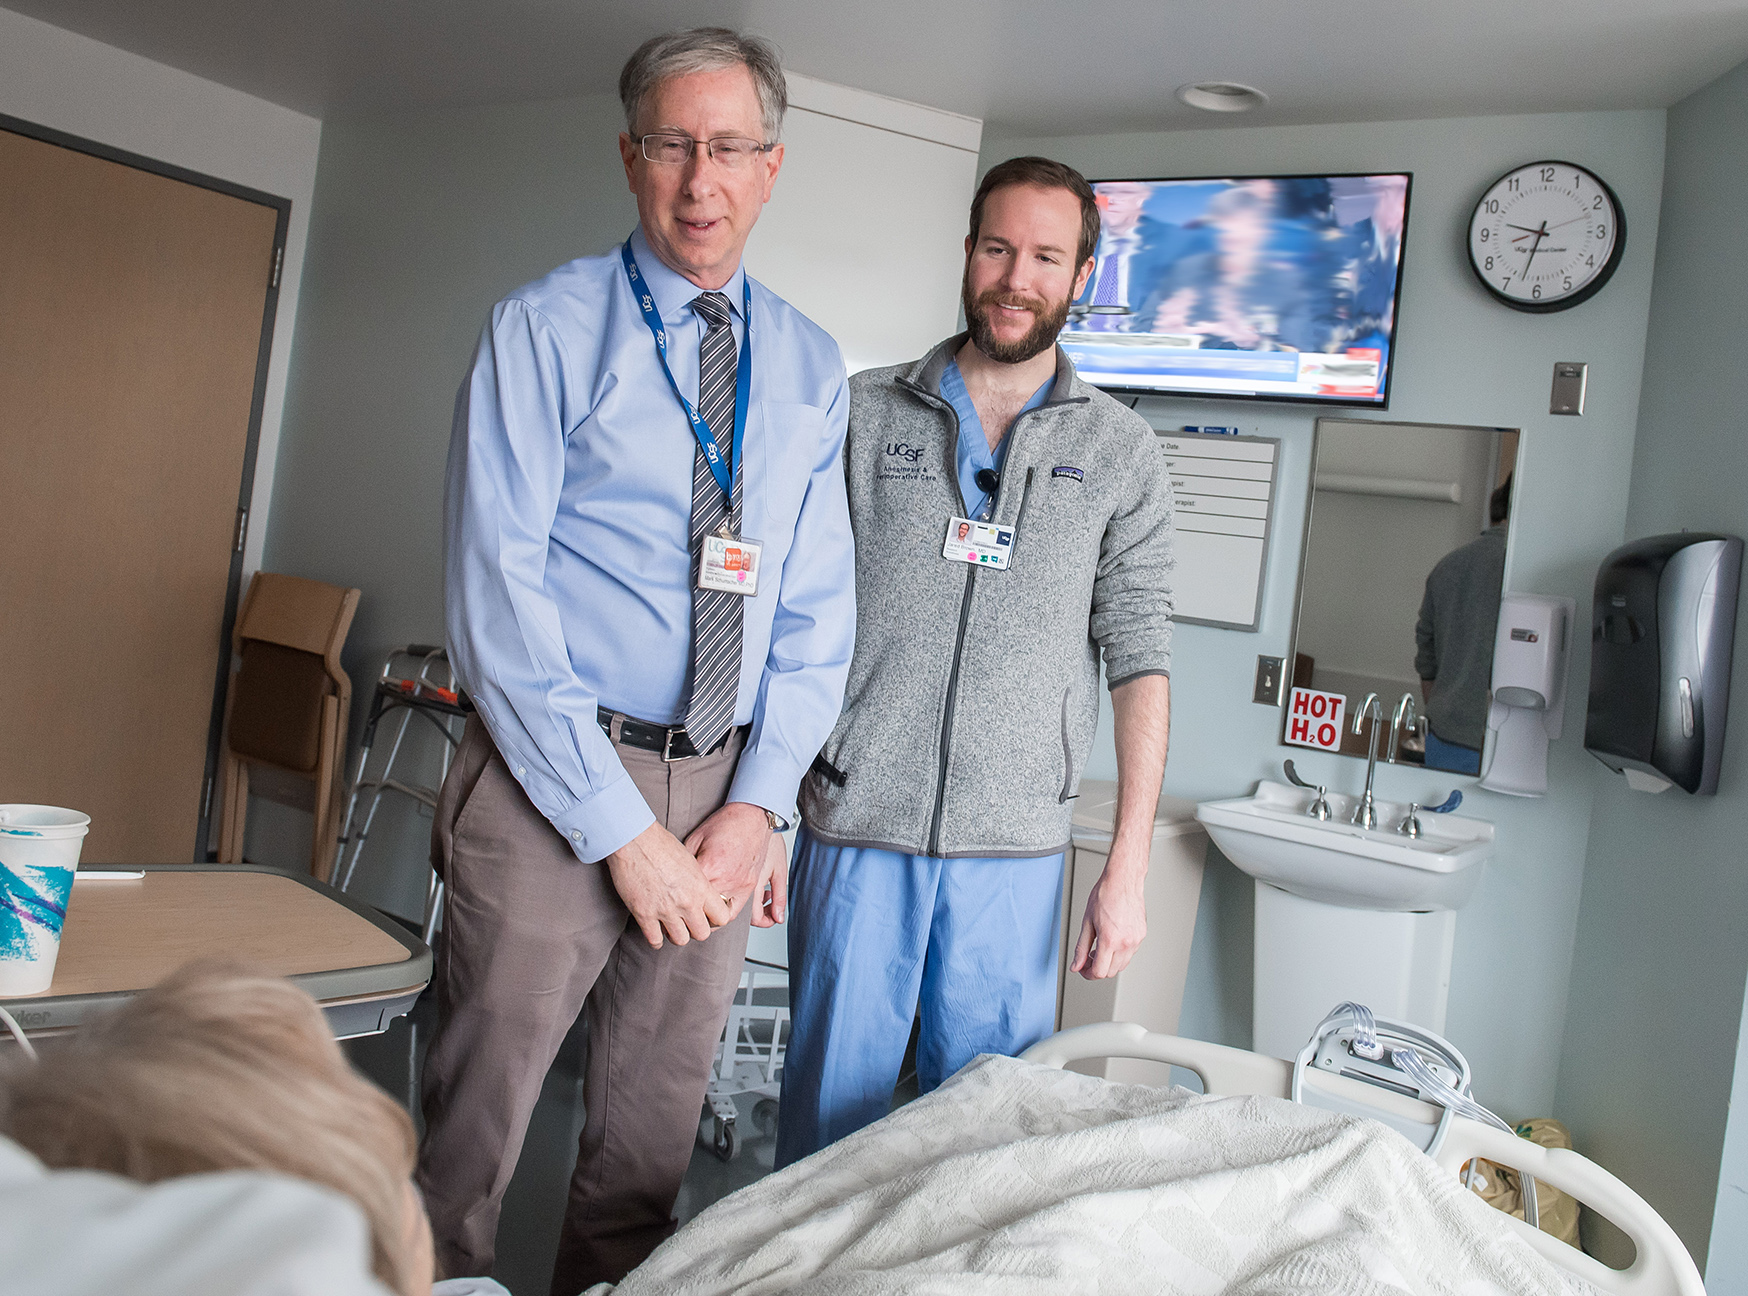 Drs. Mark Schumacher and Jared Brown